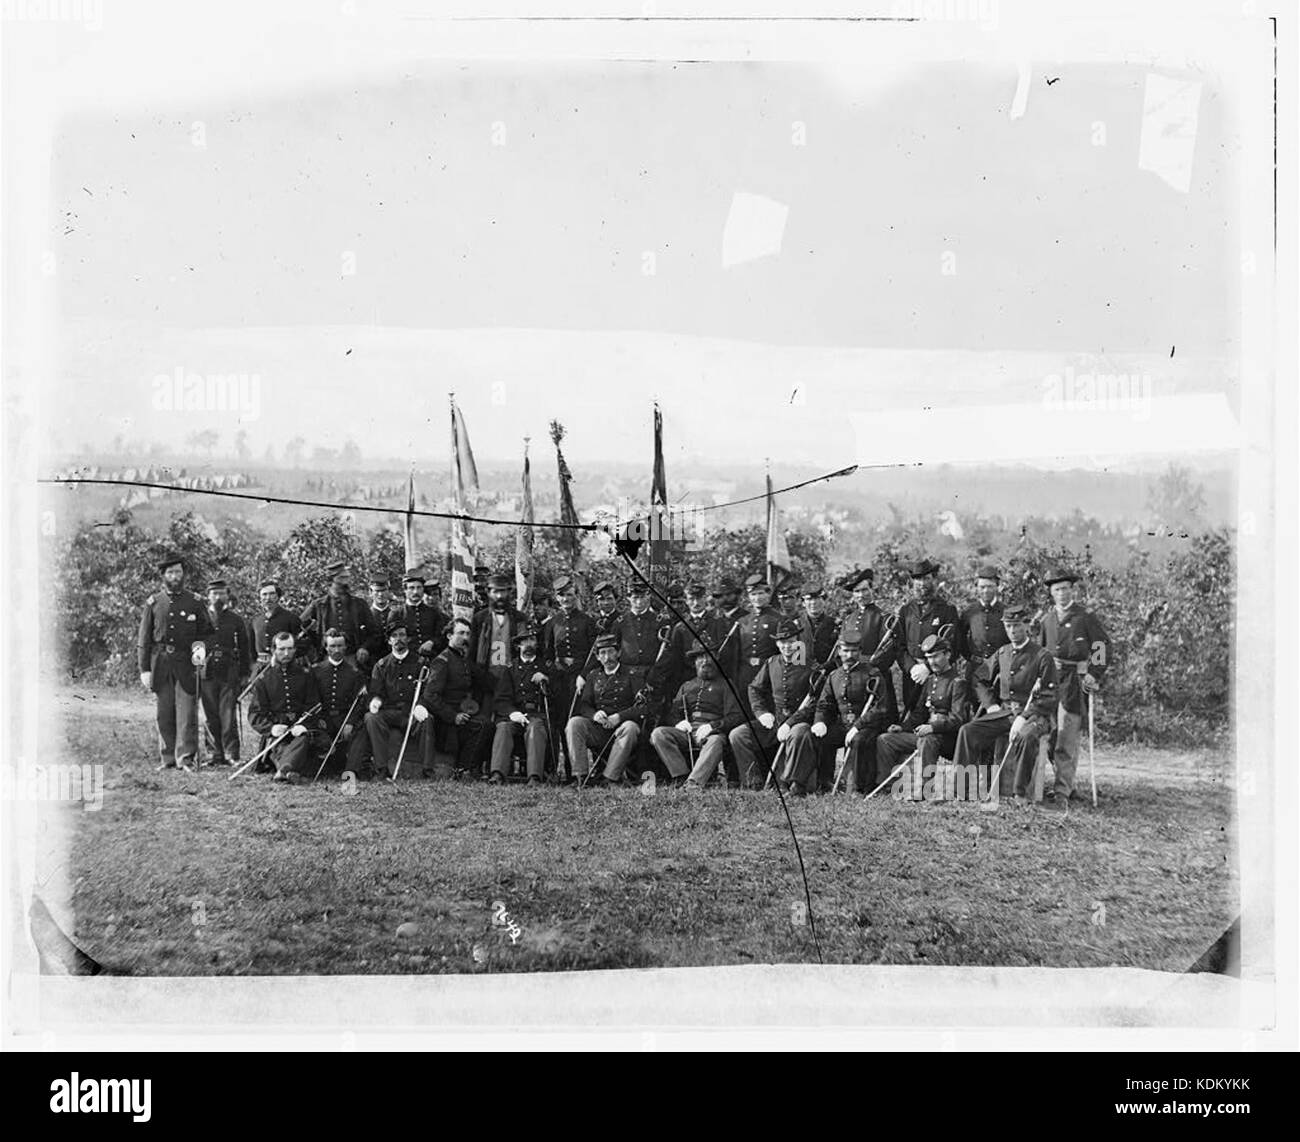 Lt. Col. James J. Smith and officers of 69th New York Infantry (Irish Brigade) - Stock Image